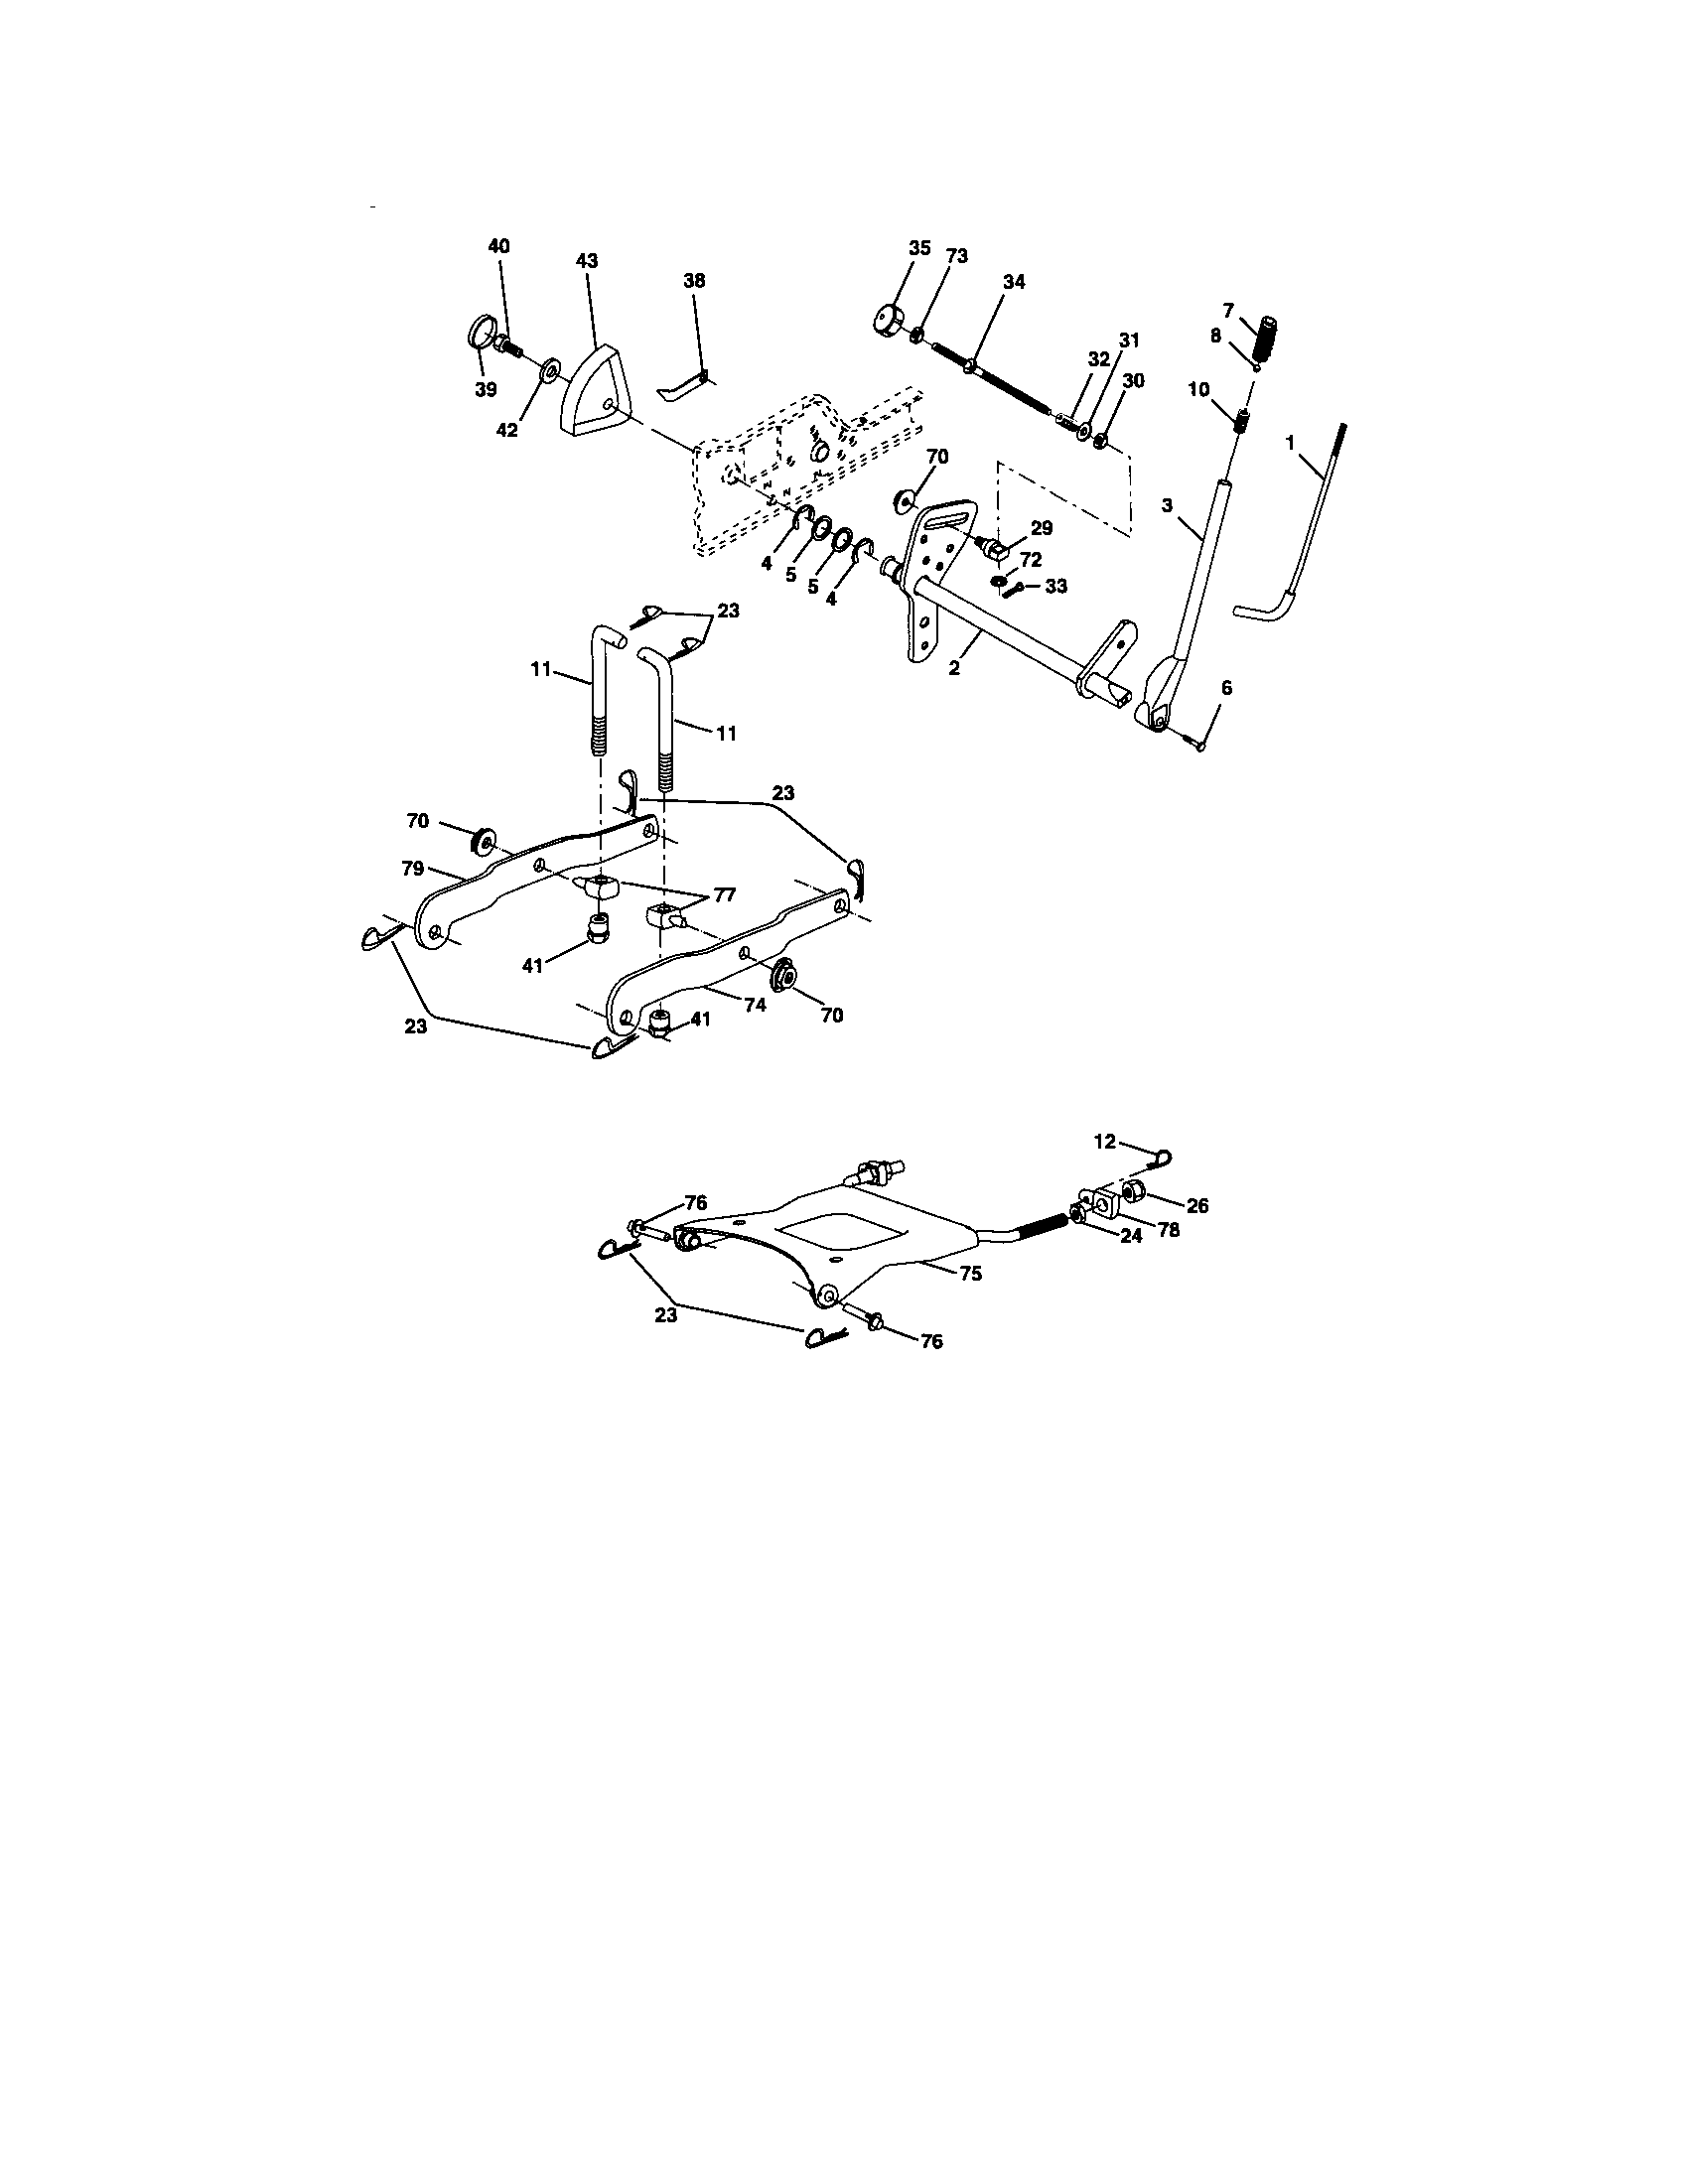 hight resolution of electrical craftsman 917276360 lift assembly diagram